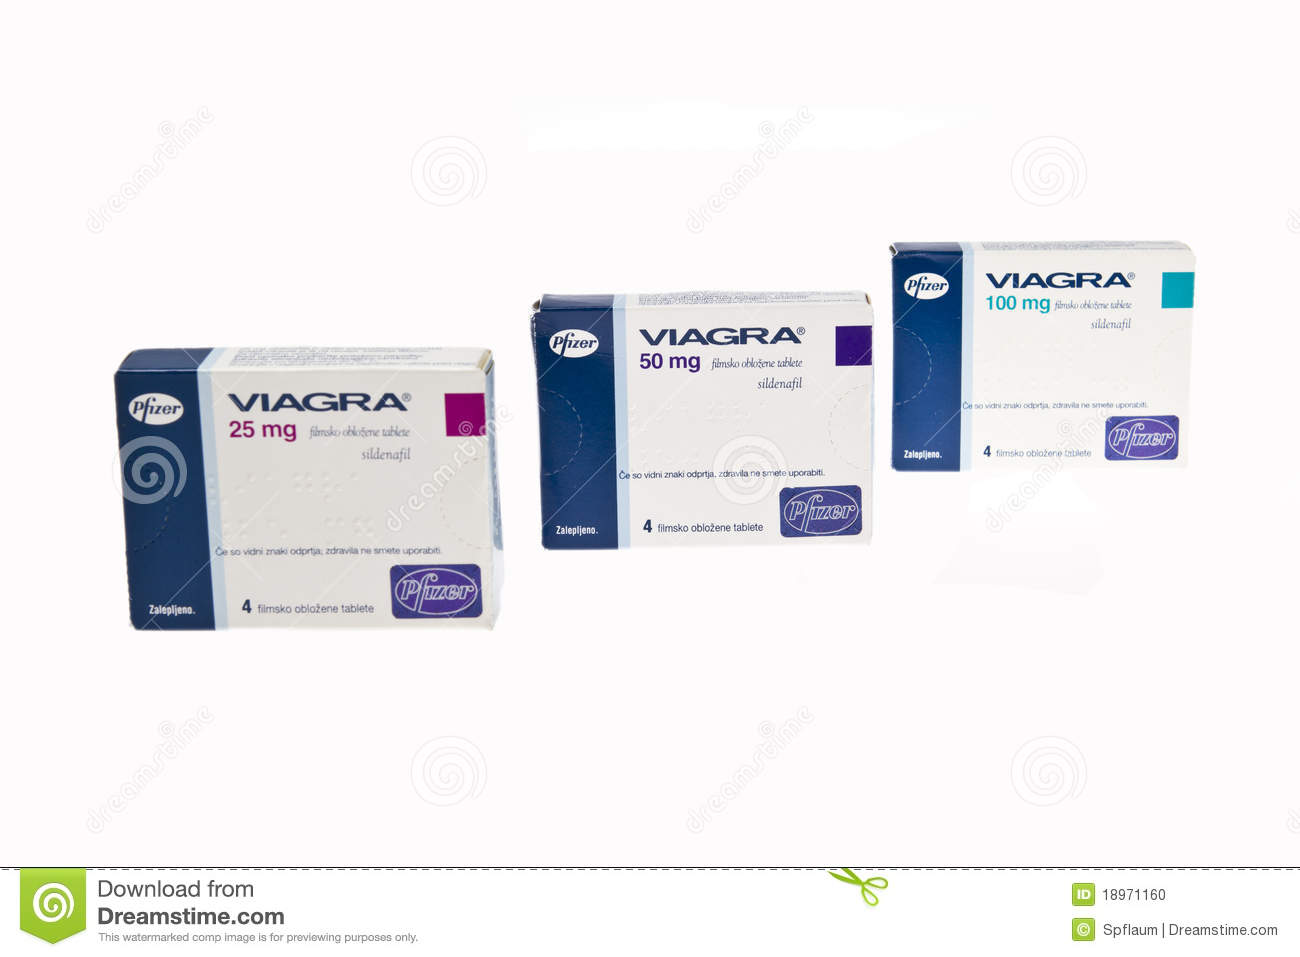 Viagra free sample offer